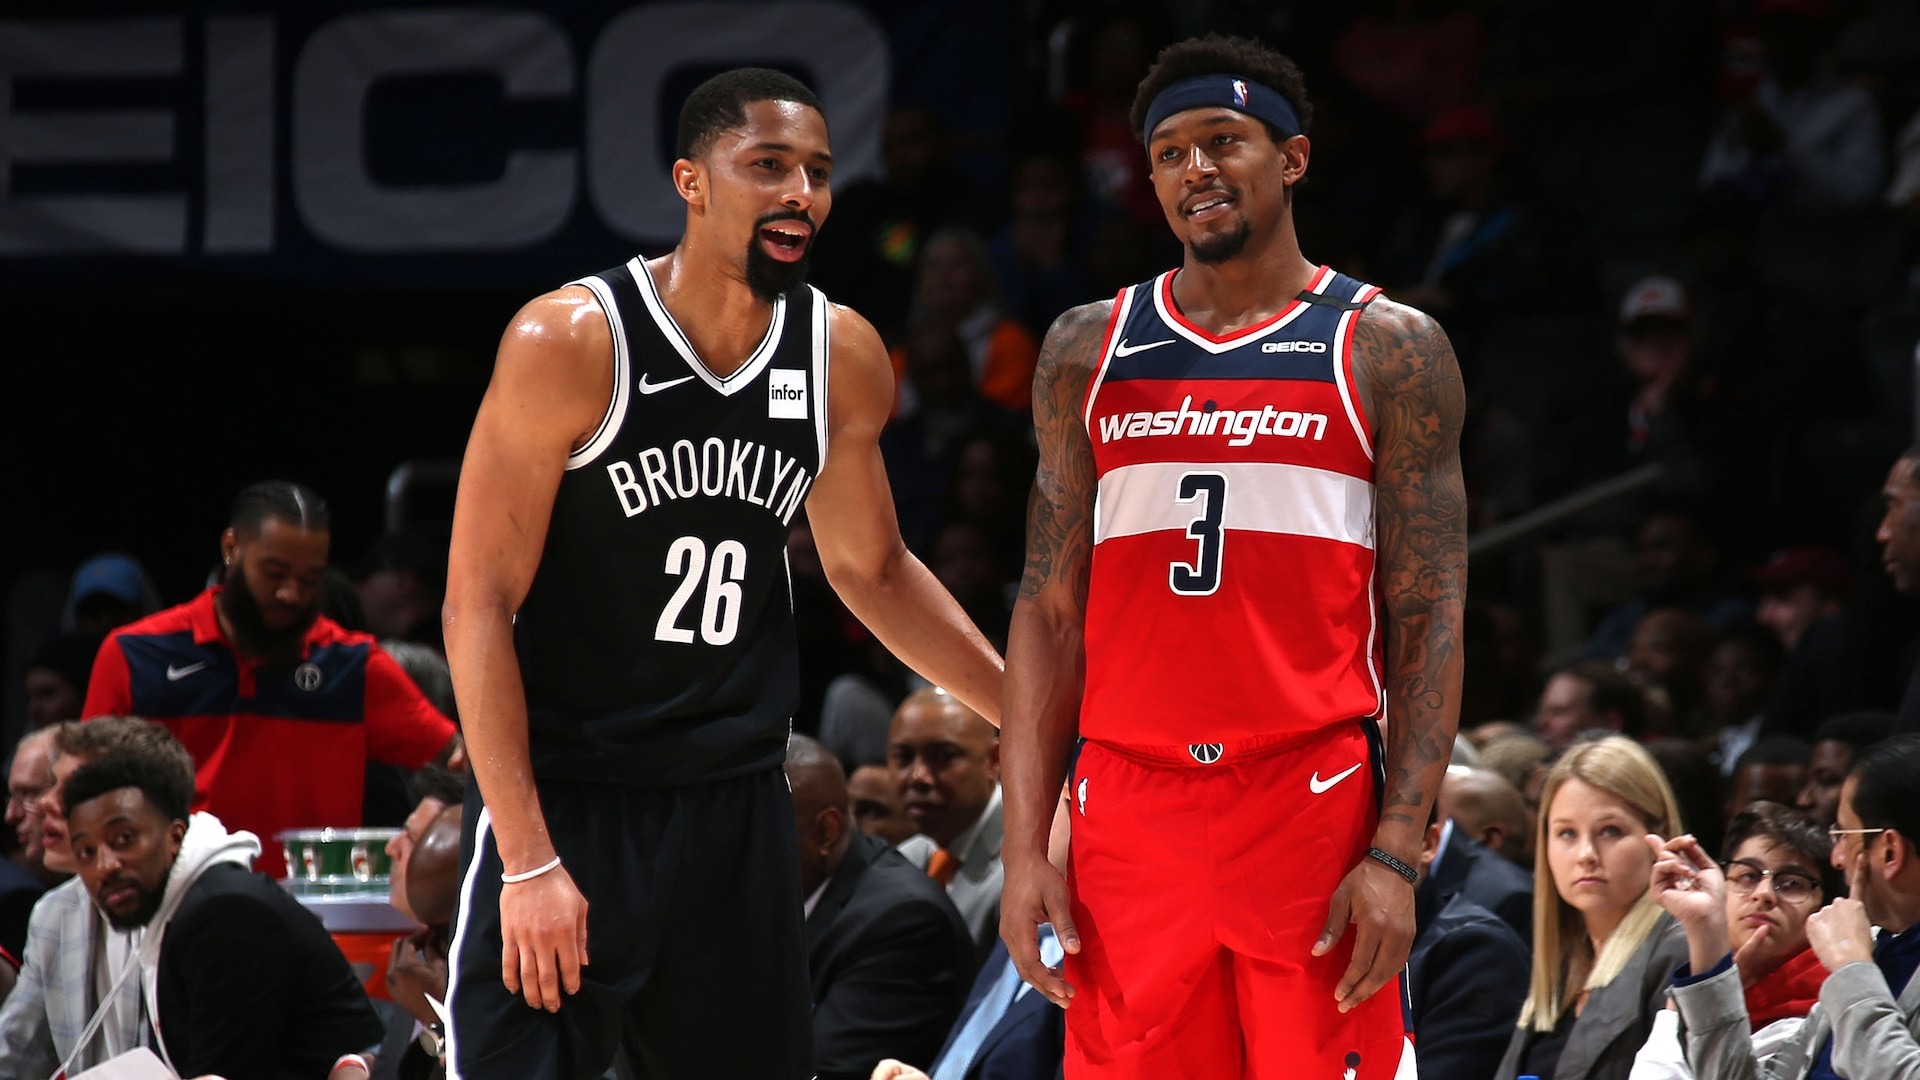 Wizards' Bradley Beal, Nets' Spencer Dinwiddie out for remainder of NBA season